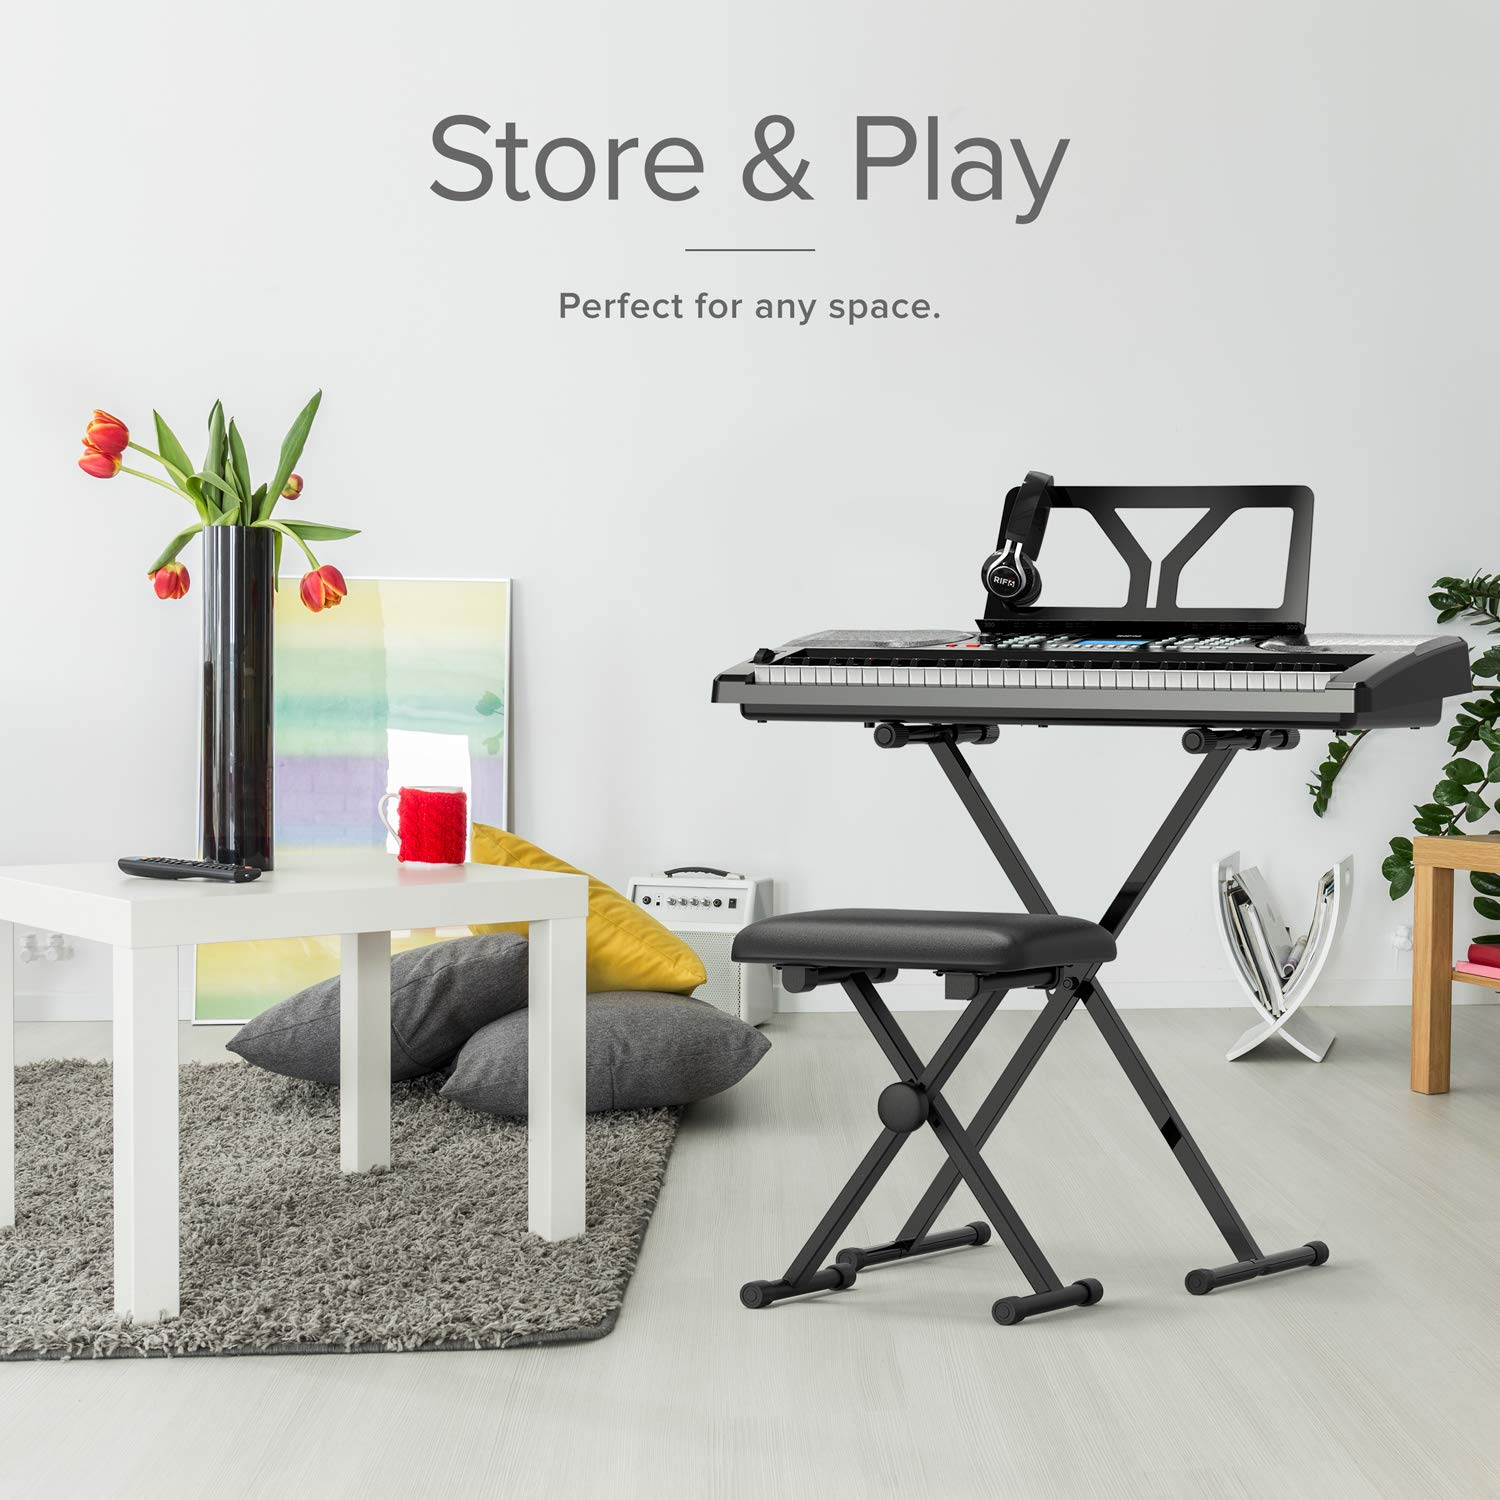 RIF6 Electric 61 Key Piano Keyboard - with Over Ear Headphones, Music Stand, Digital LCD Display, Teaching Modes and Adjustable Stool - Electronic Musical Instruments Starter Set for Kids and Adults by RIF6 (Image #9)